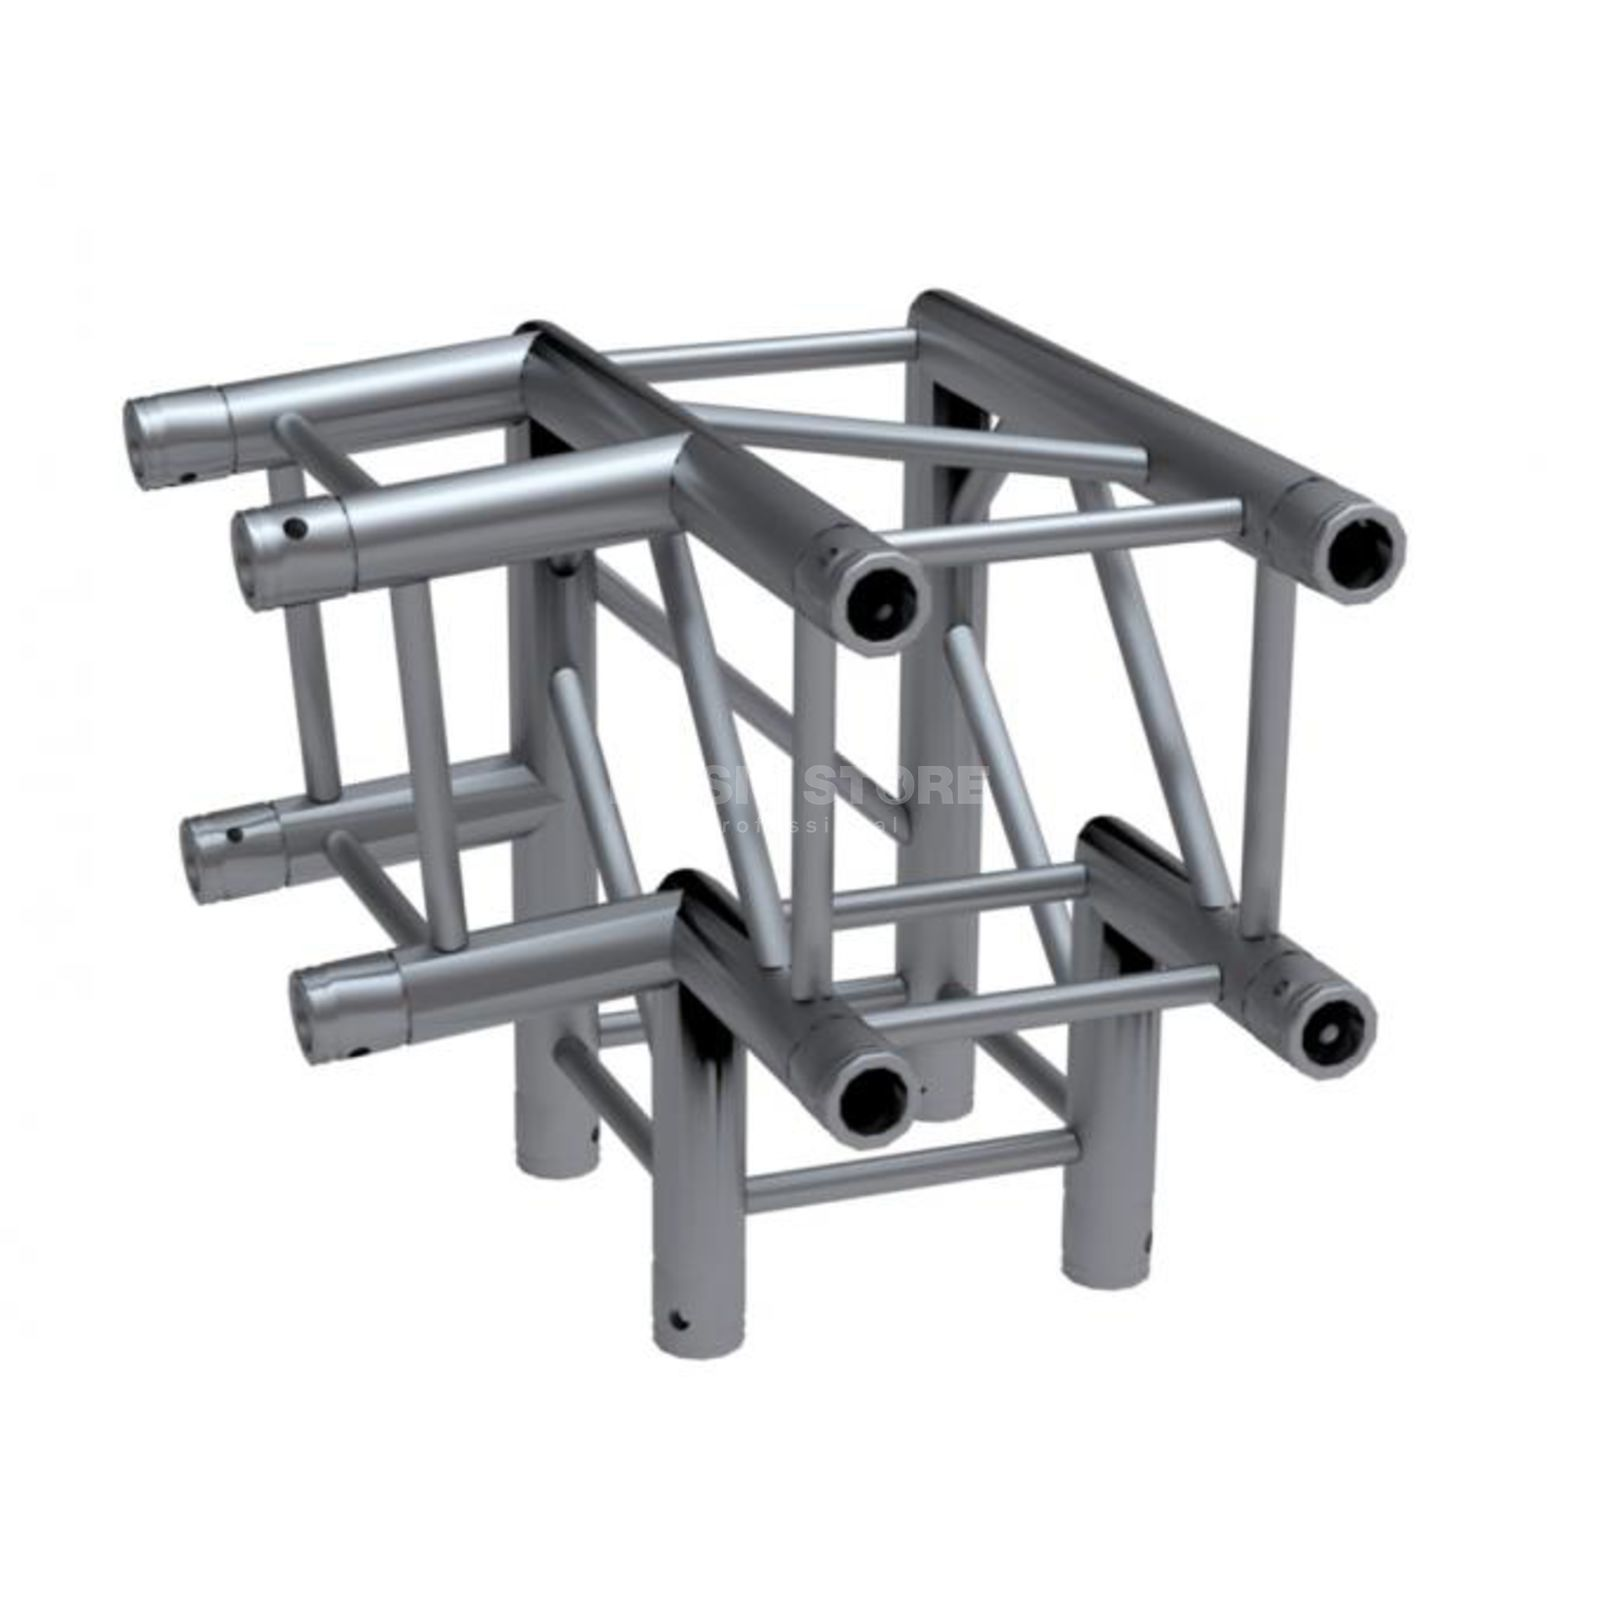 Global Truss F34 3-Weg Ecke C30 Abgang links 85° Produktbild